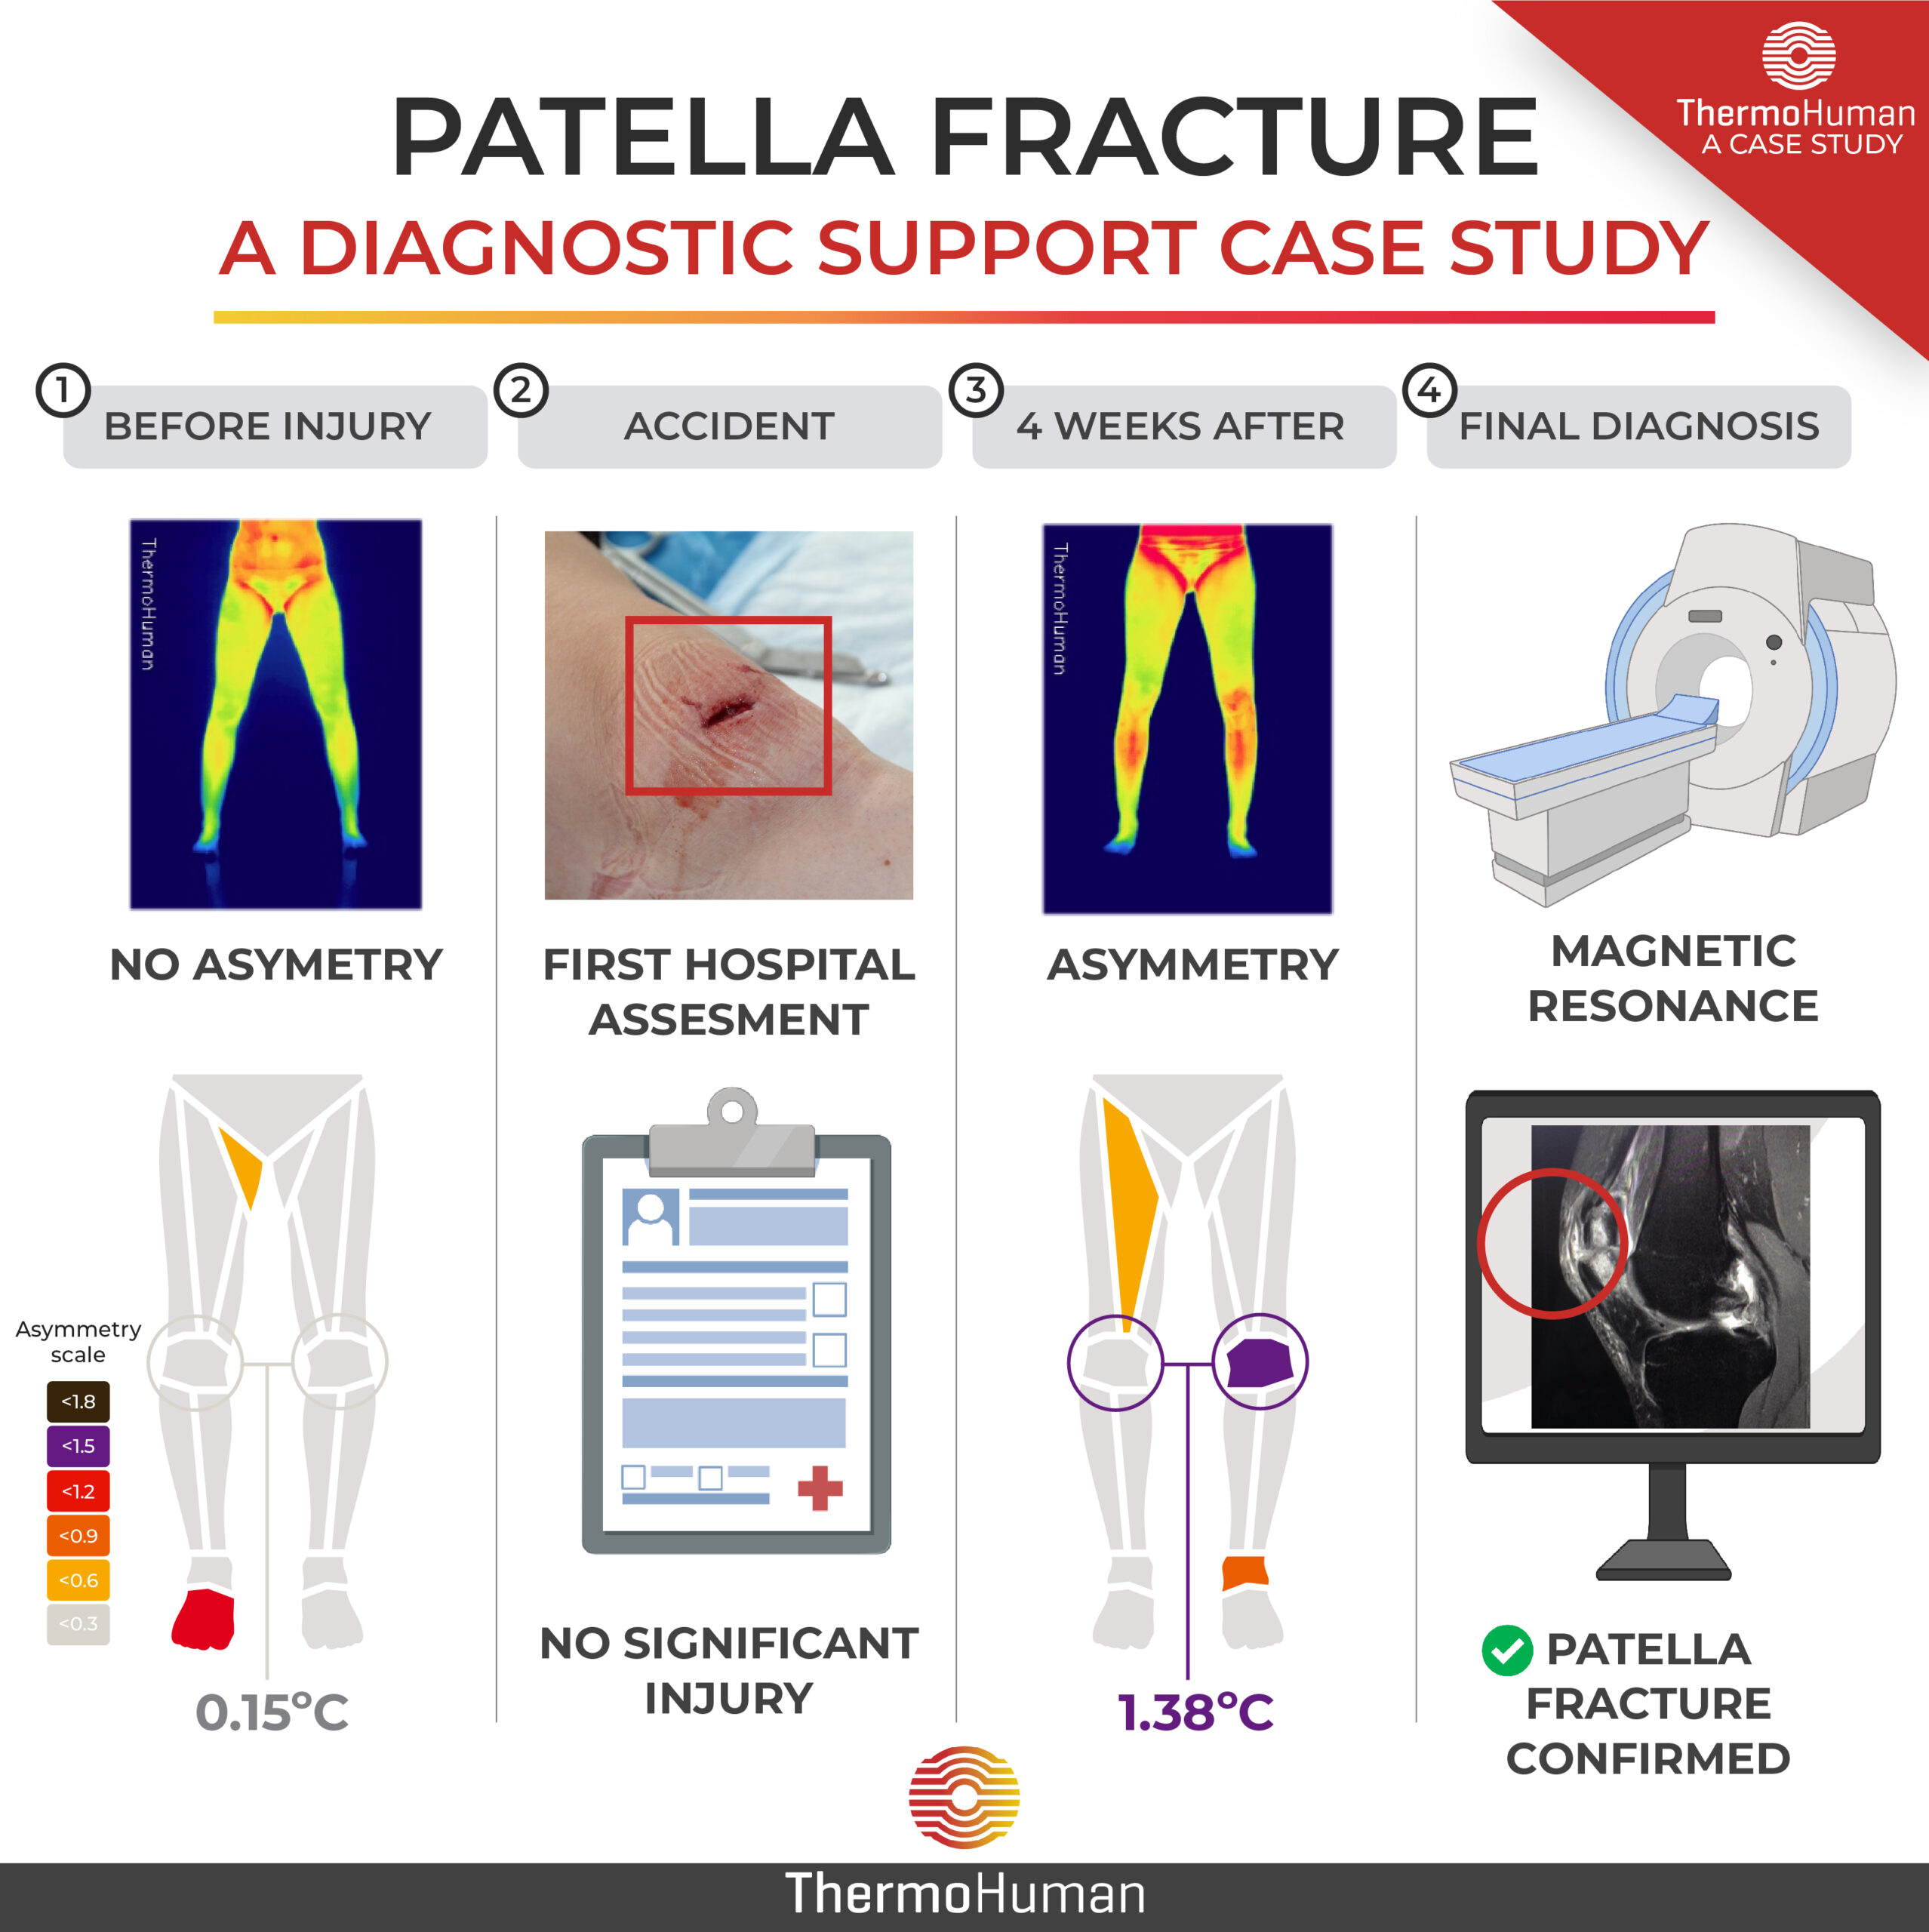 Thermography as a diagnostic support tool in a patella fracture: a case study